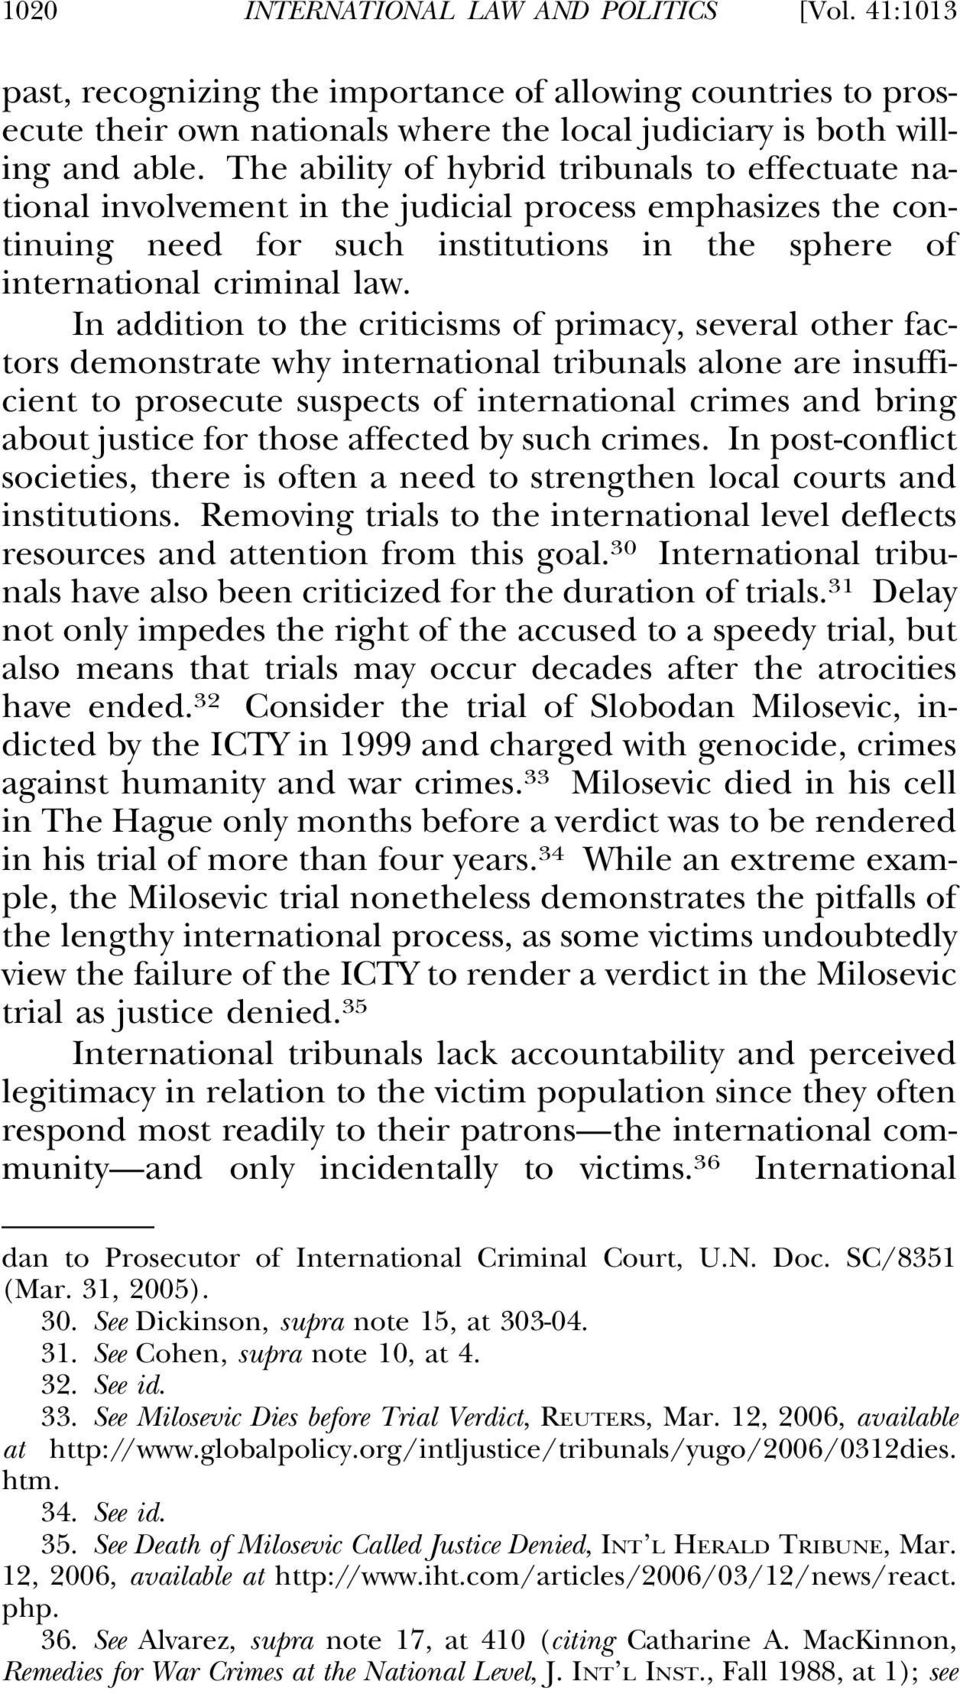 In addition to the criticisms of primacy, several other factors demonstrate why international tribunals alone are insufficient to prosecute suspects of international crimes and bring about justice